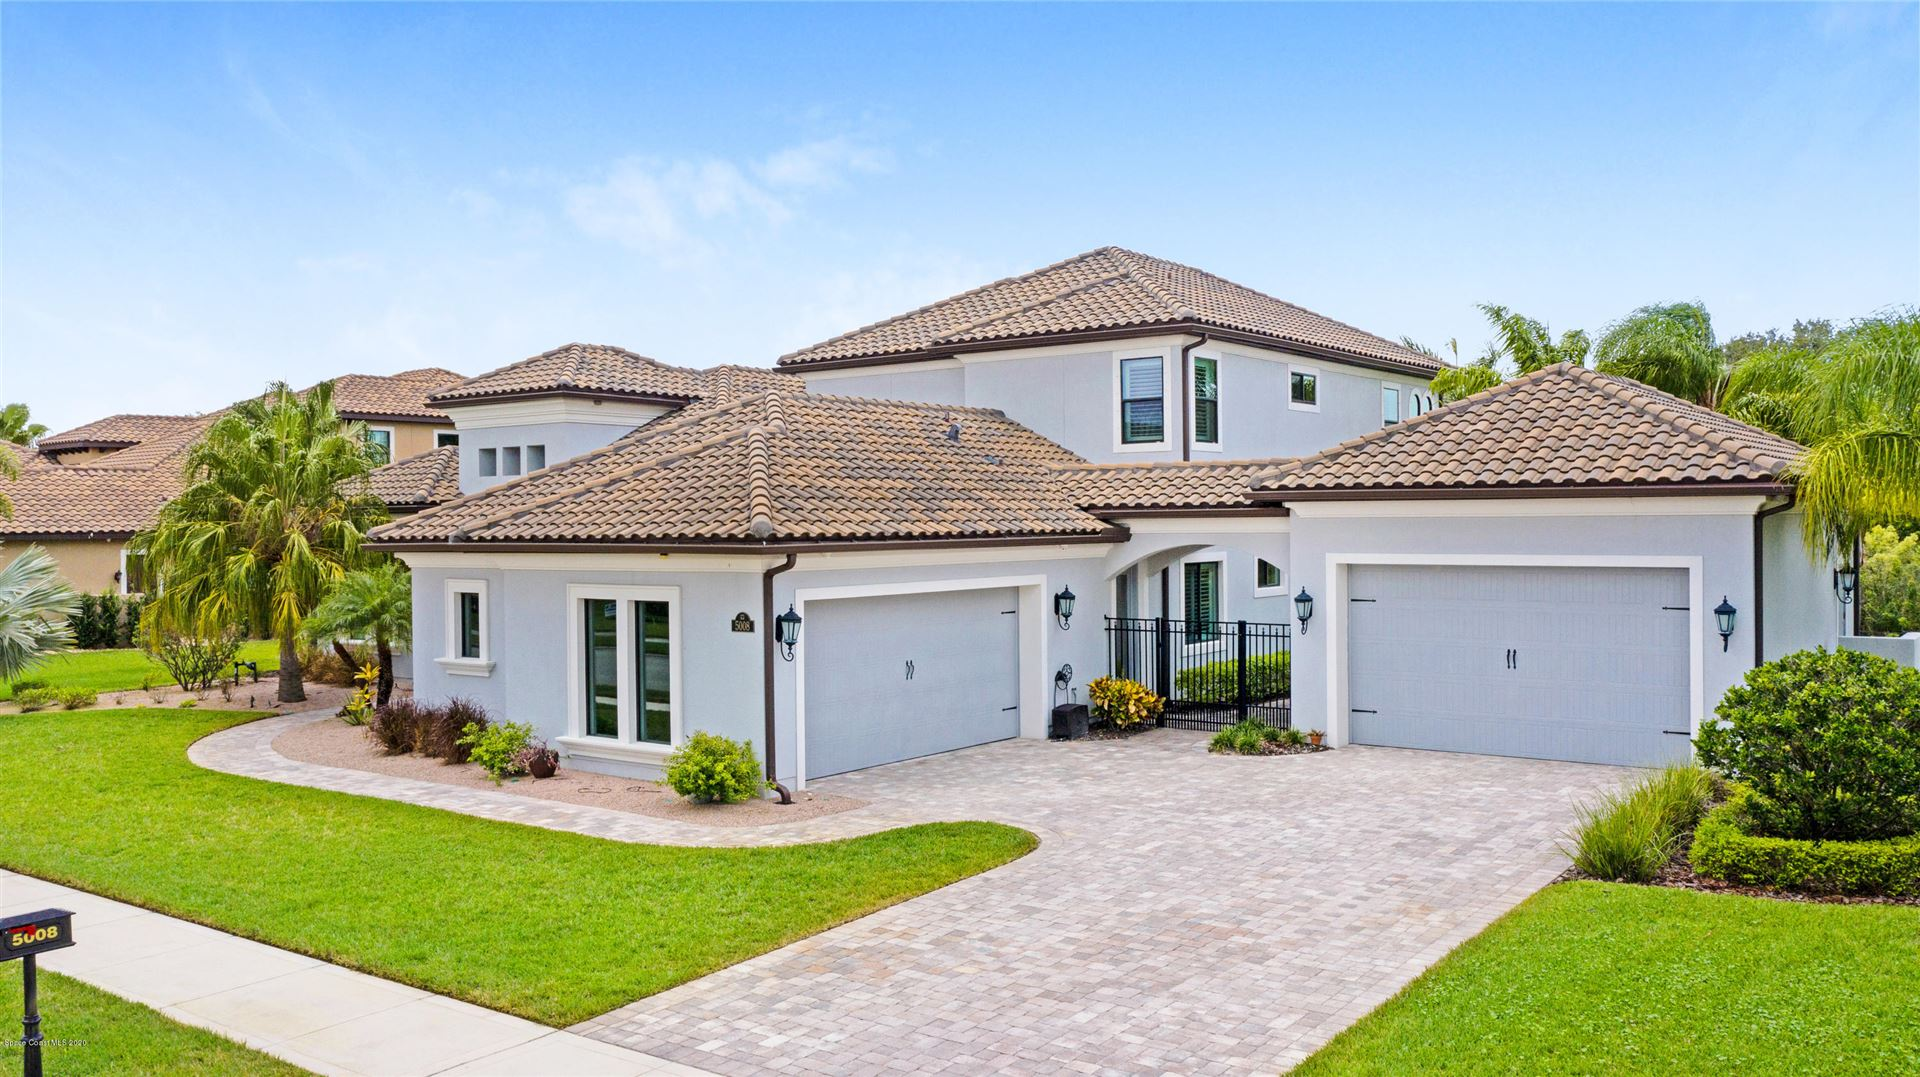 5008 Duson Way, Rockledge, FL 32955 - #: 888537